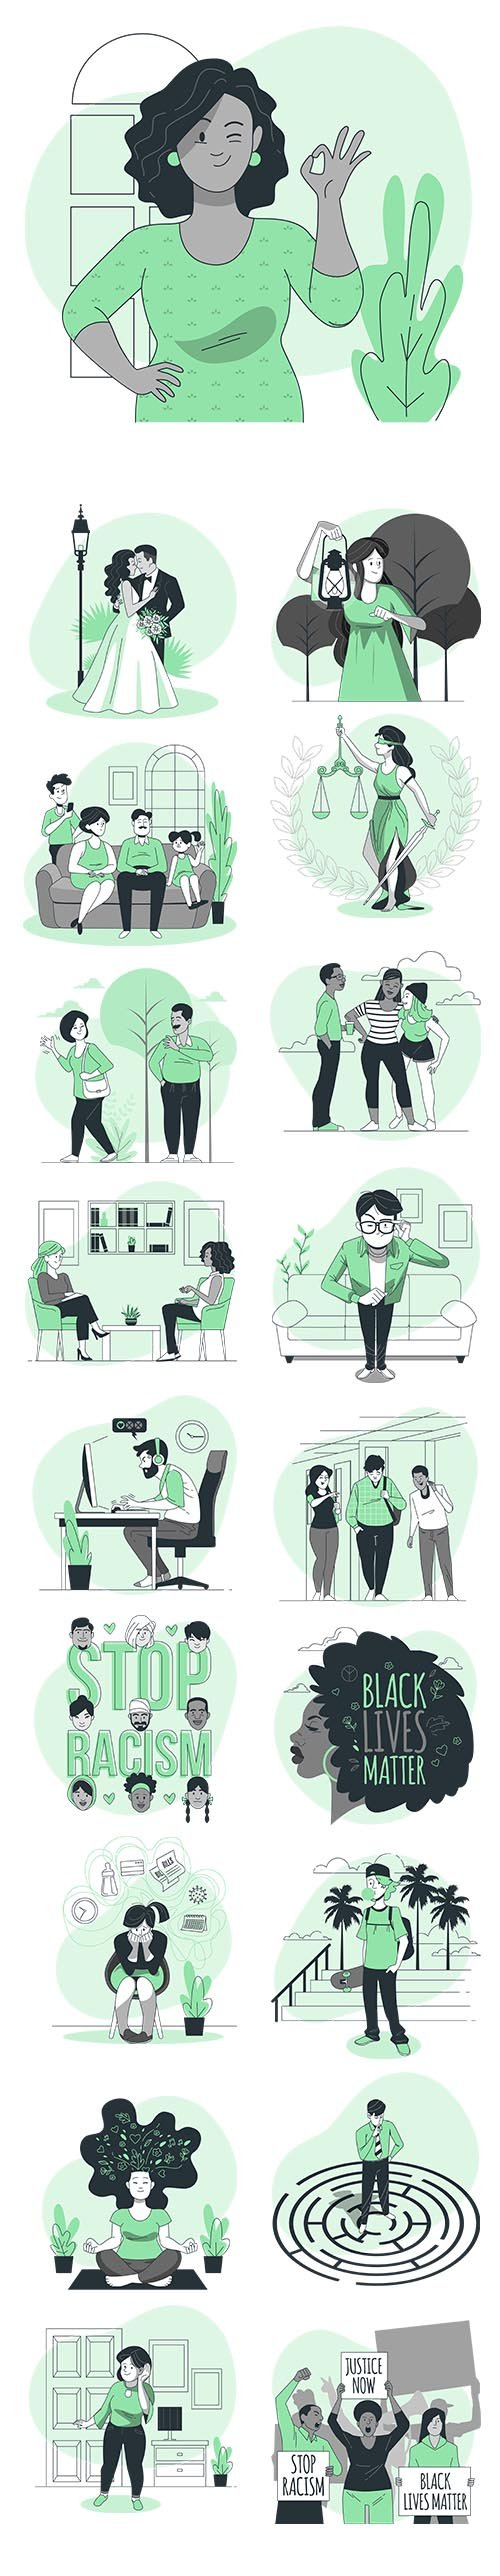 Vector Green Illustrations People Concept